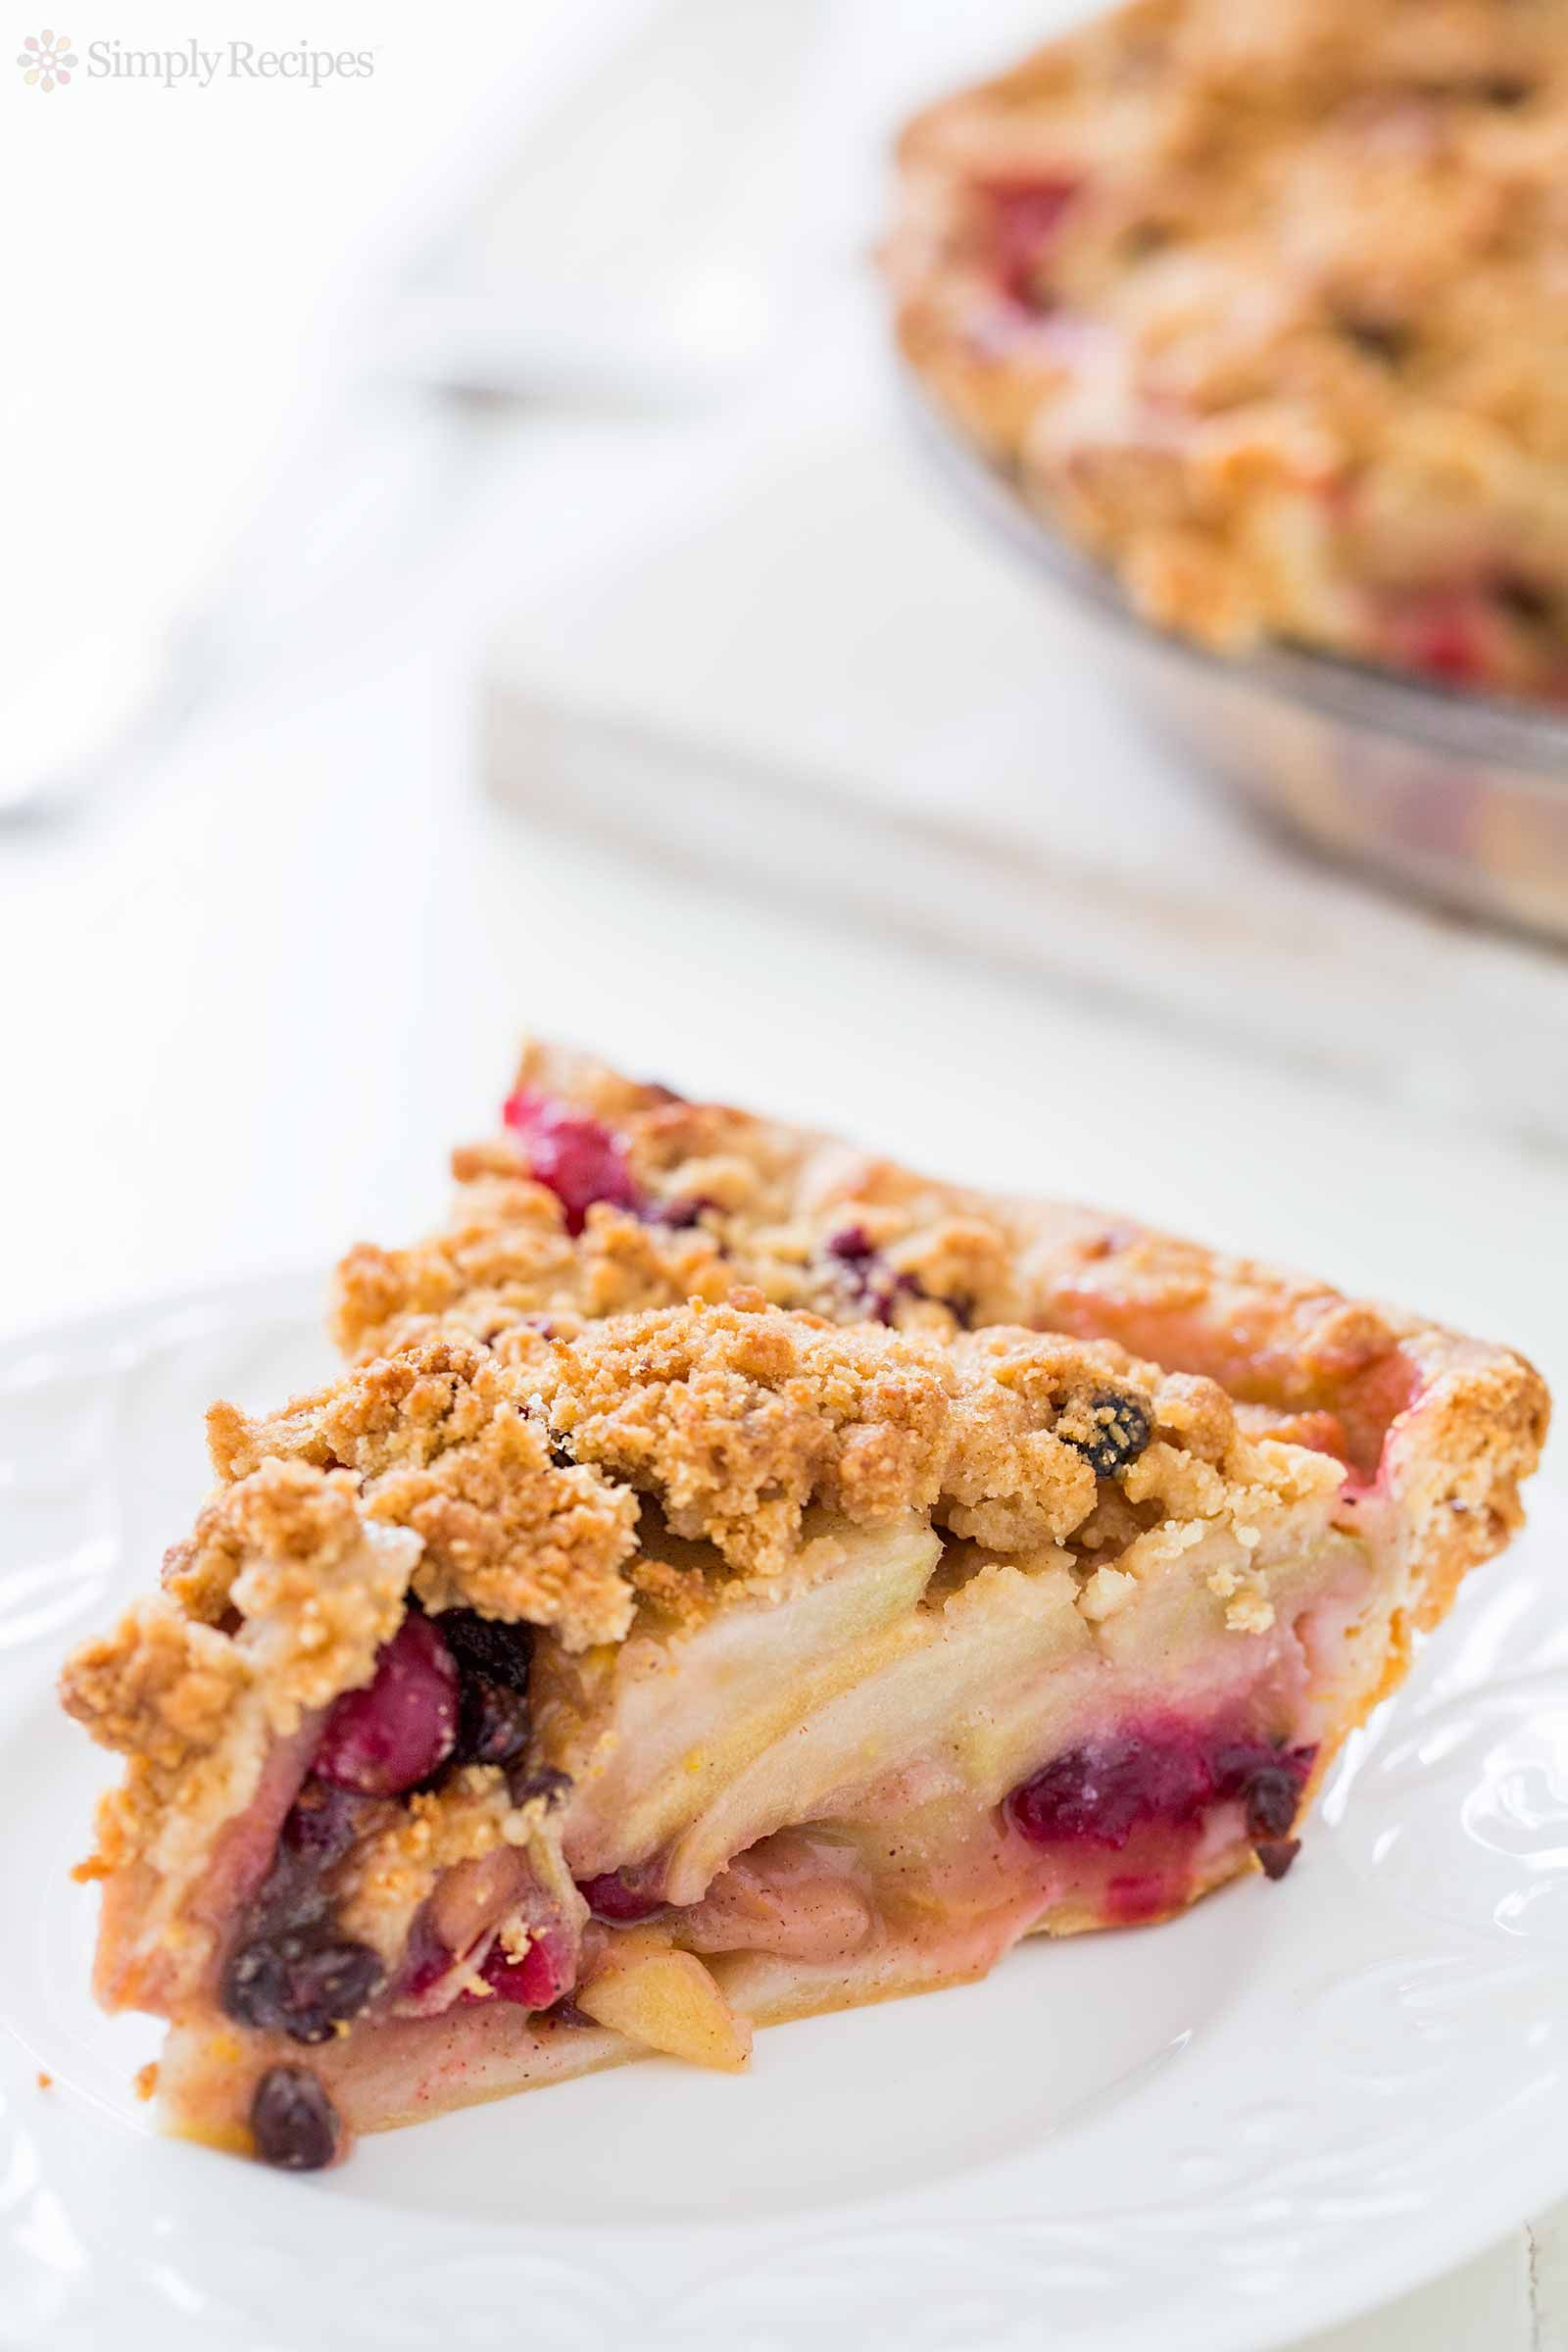 Apple and Dried Cranberry Pie forecasting